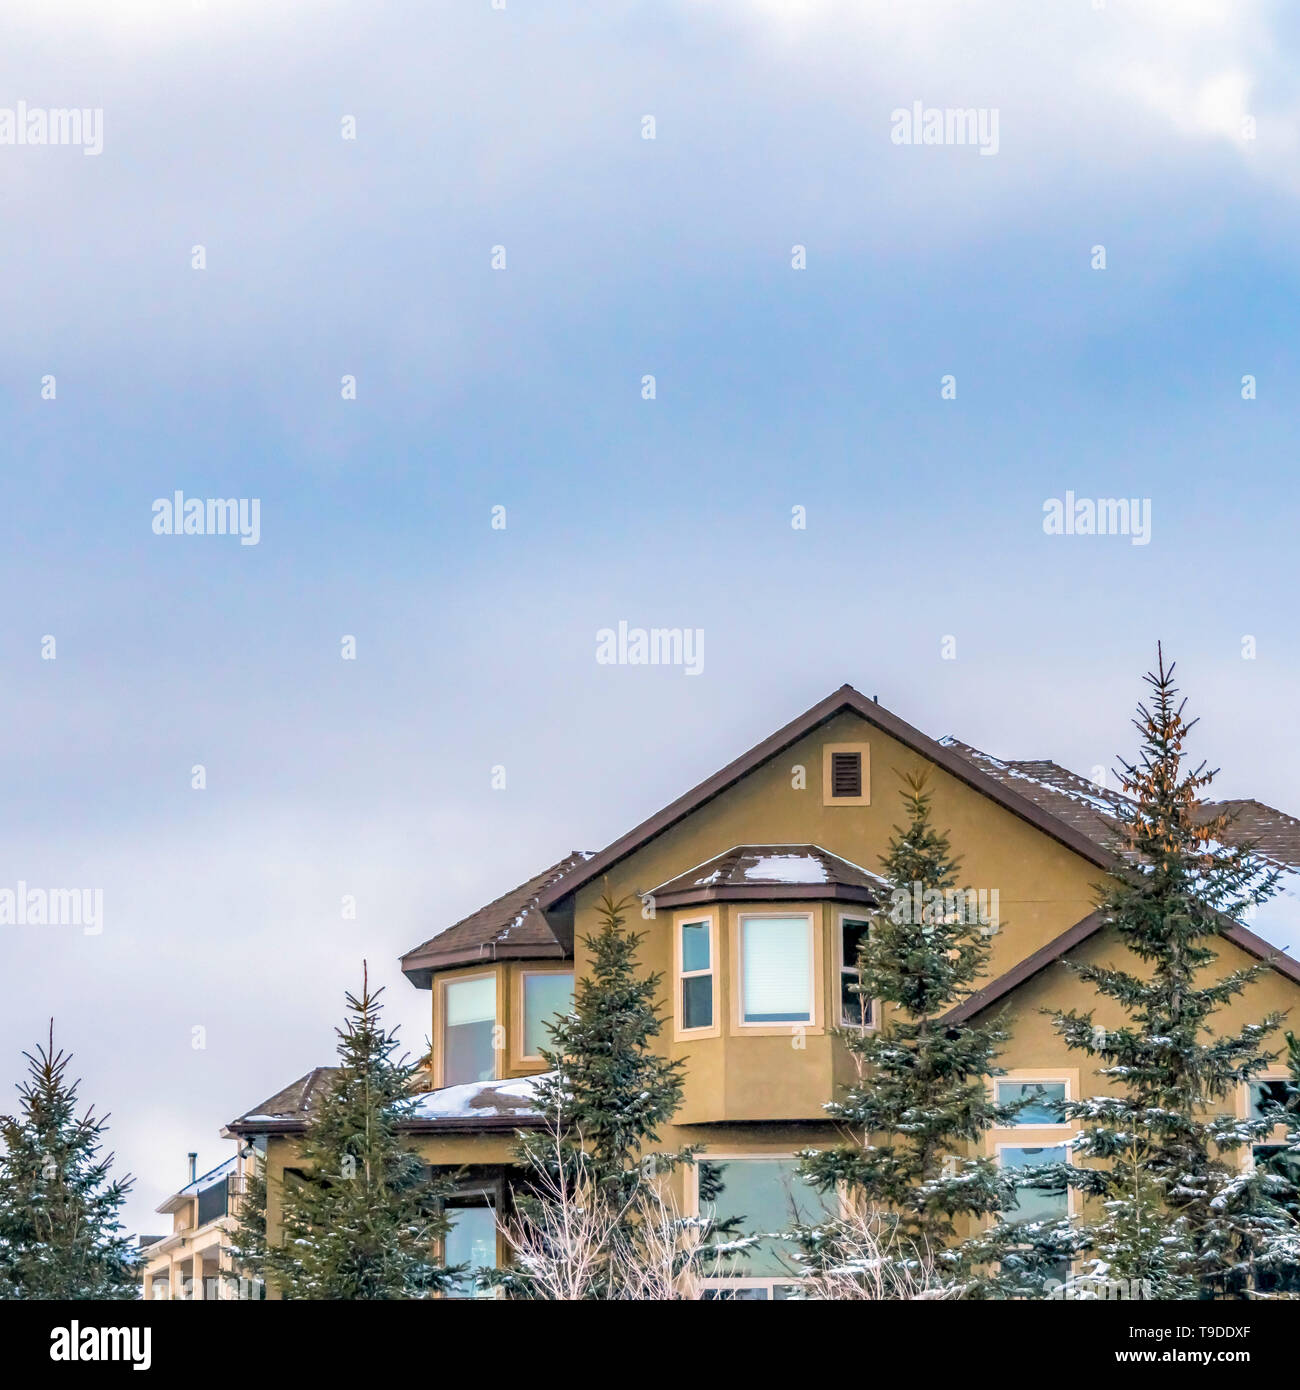 Clear Square Exterior of an elegant house against blue sky with puffy clouds in winter - Stock Image